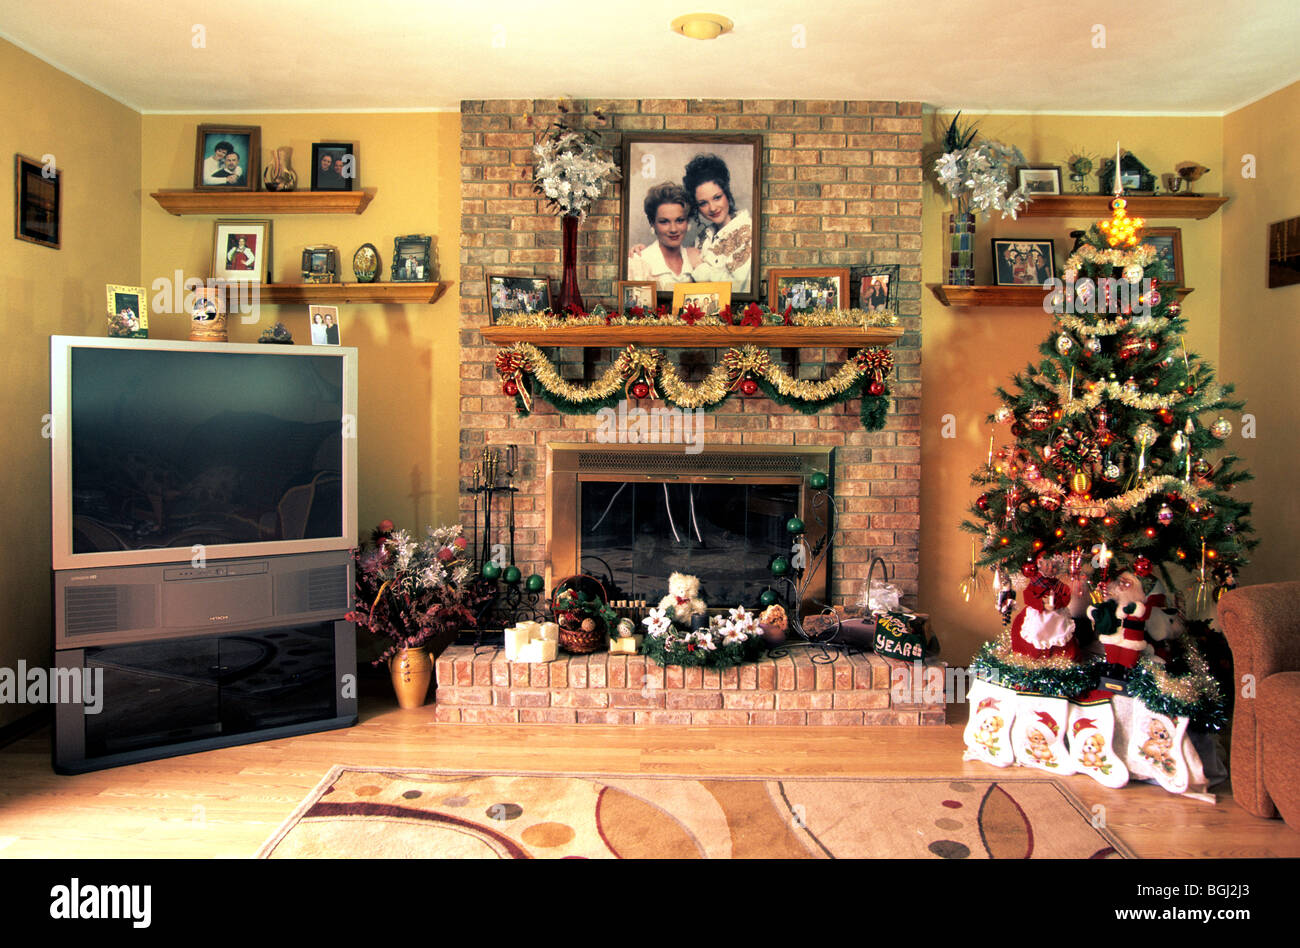 Family Room Decorated For Christmas Still Life Art Artistic